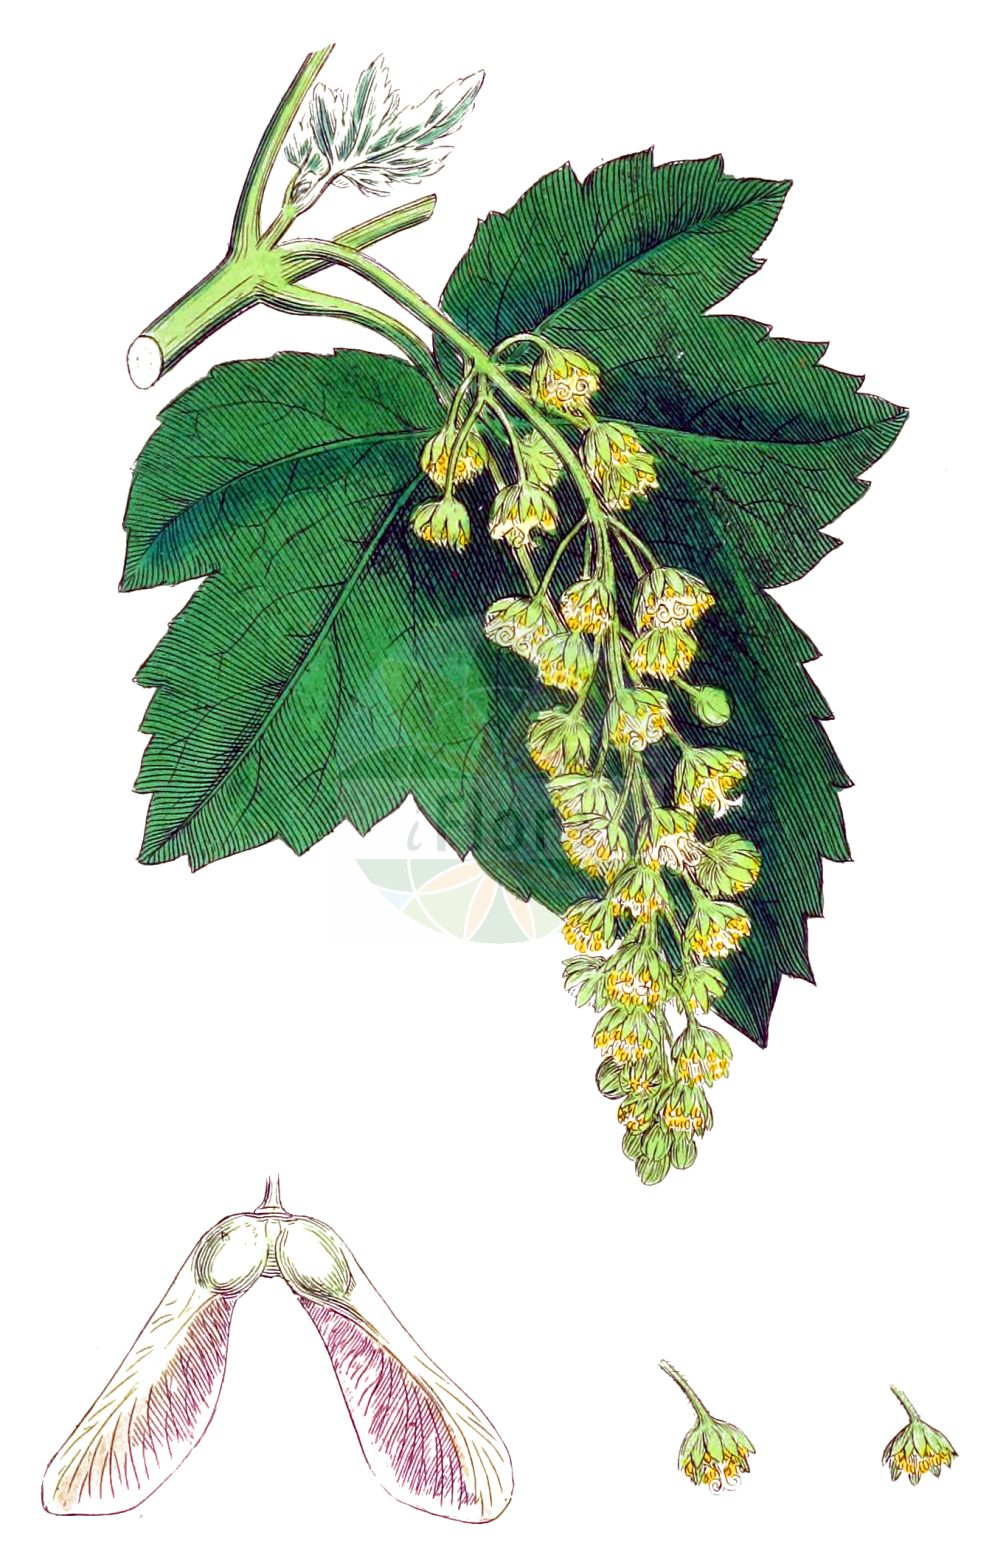 Historische Abbildung von Acer pseudoplatanus (Berg-Ahorn - Sycamore). Das Bild zeigt Blatt, Bluete, Frucht und Same. ---- Historical Drawing of Acer pseudoplatanus (Berg-Ahorn - Sycamore).The image is showing leaf, flower, fruit and seed.(Acer pseudoplatanus,Berg-Ahorn,Sycamore,Acer pseudoplatanus,Acer quinquelobum,Acer villosum,Berg-Ahorn,Trauben-Ahorn,Wald-Ahorn,Weiss-Ahorn,Sycamore,Common Sycamore,Sycamore Maple,Great Maple,Plane Maple,Acer,Ahorn,Maple,Sapindaceae,Seifenbaumgewaechse,Soapberry family,Blatt,Bluete,Frucht,Same,leaf,flower,fruit,seed,Sowerby (1790-1813))